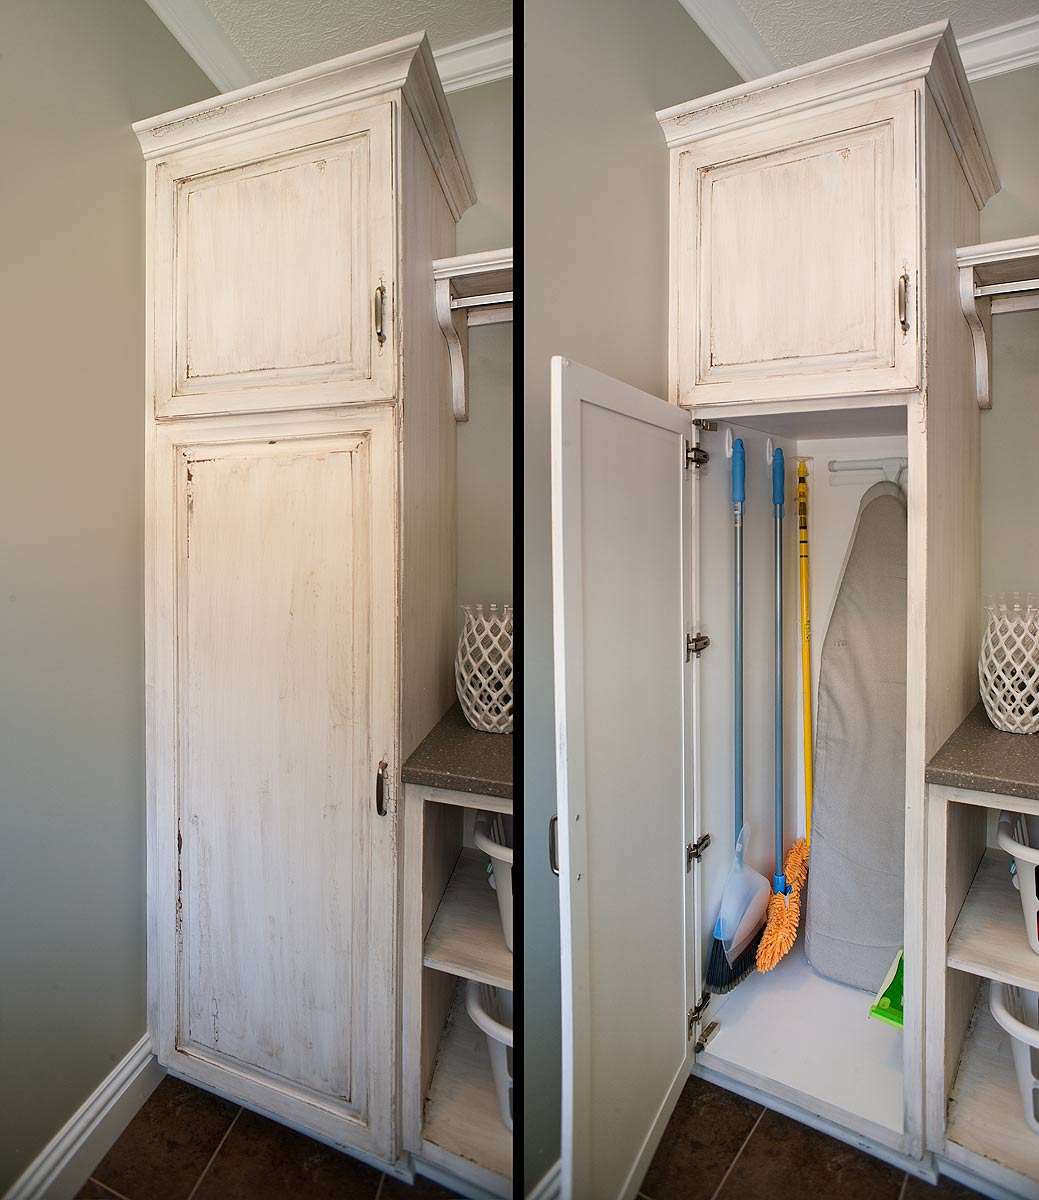 Broom Closet Cabinet Smart And Practical Solution To Organize The Brooms And